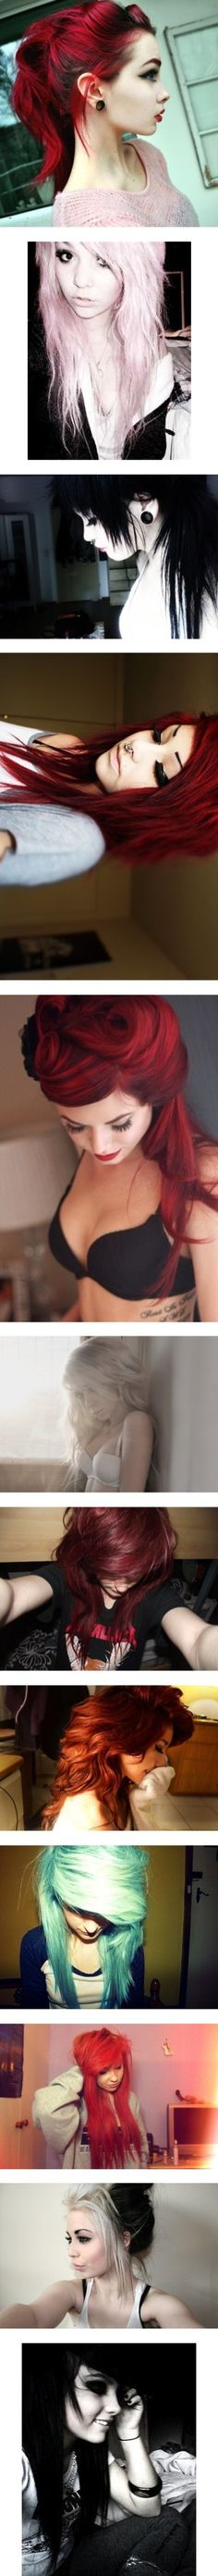 """cute alternative hairstyles"" by alyinwonderland13 ❤ liked on Polyvore"